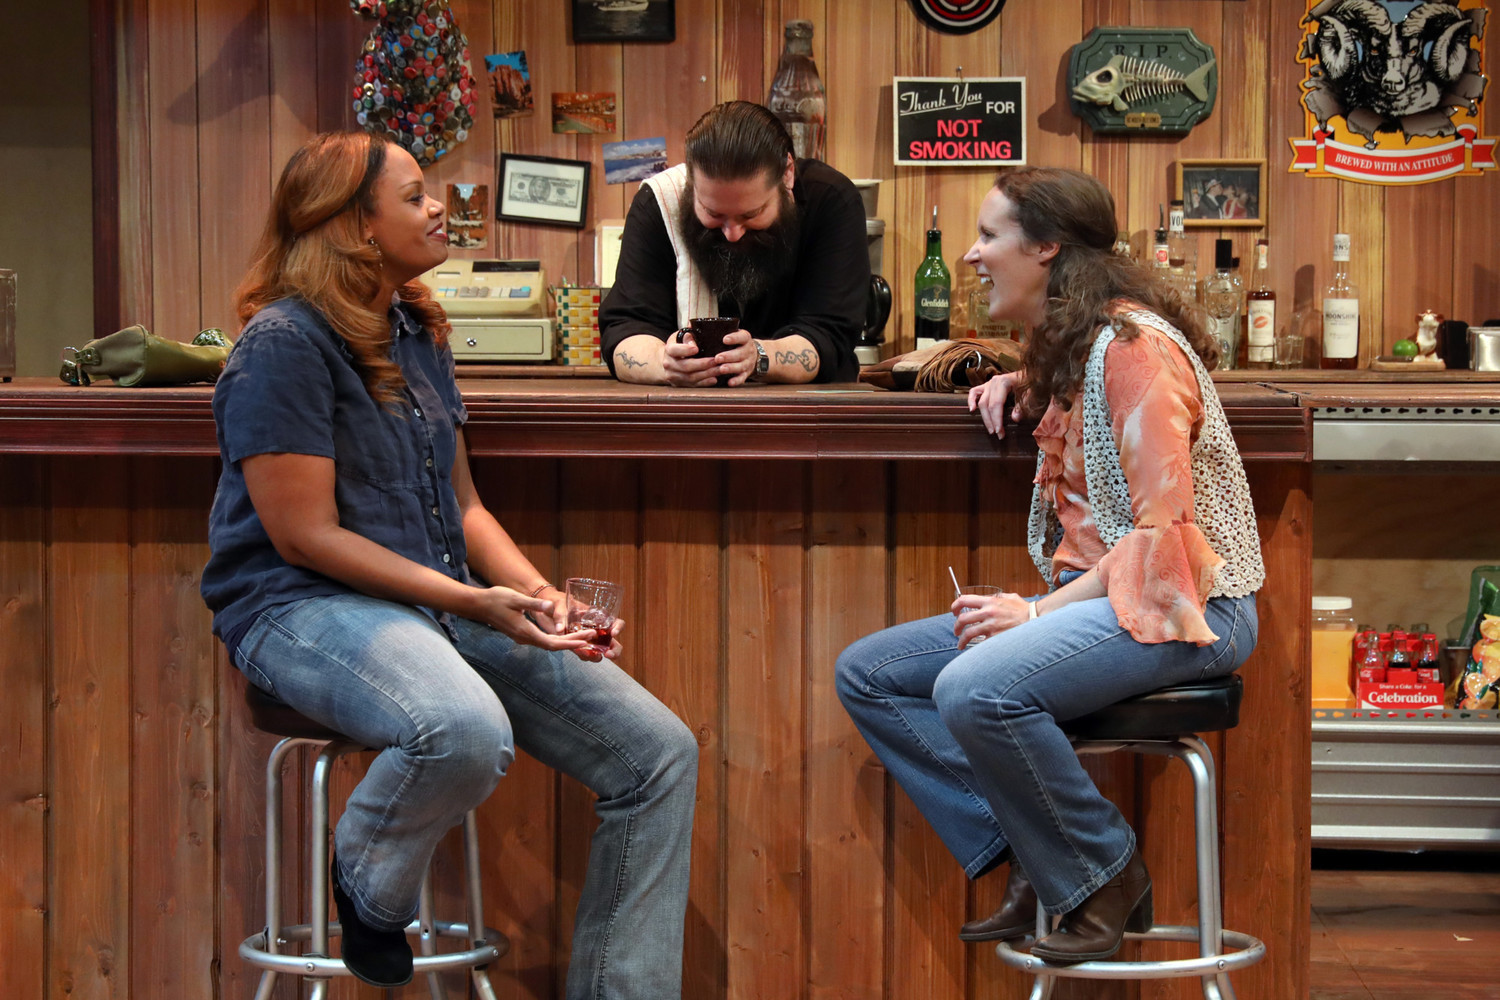 BWW Review: SWEAT brings heat to Warehouse Theatre